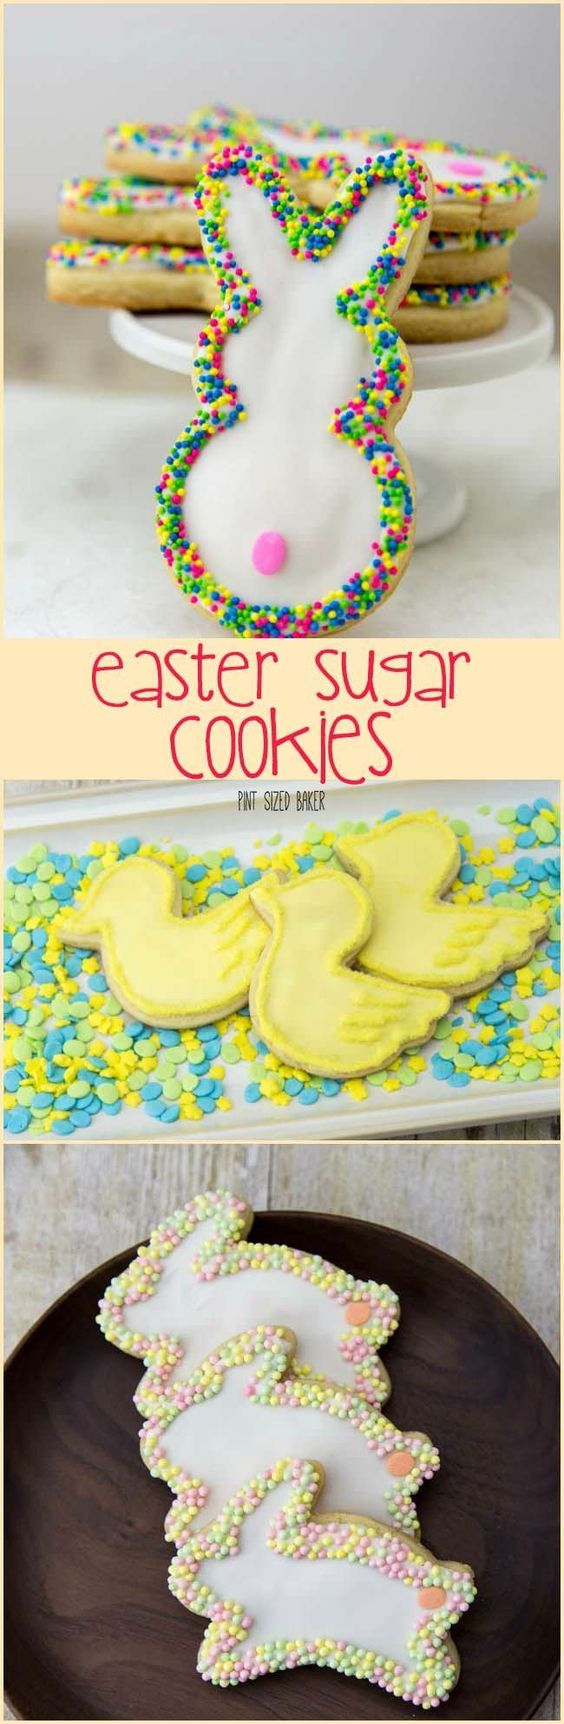 Adorable Easter Sugar Cookies sure were a hit in out household. No special tools or equipment required for these cookies.: